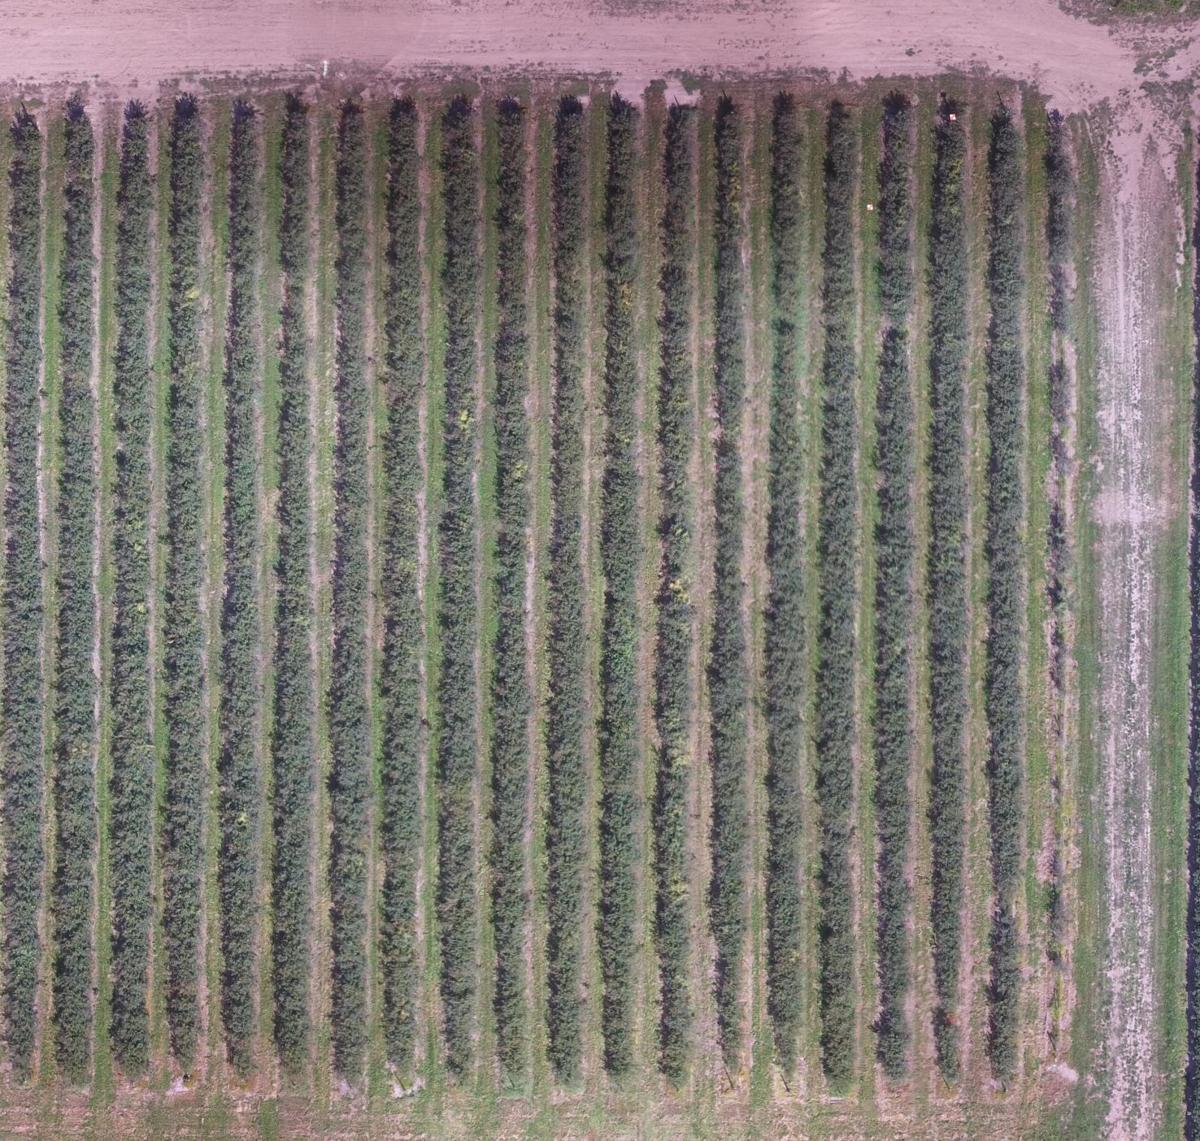 Drone view of a blueberry field